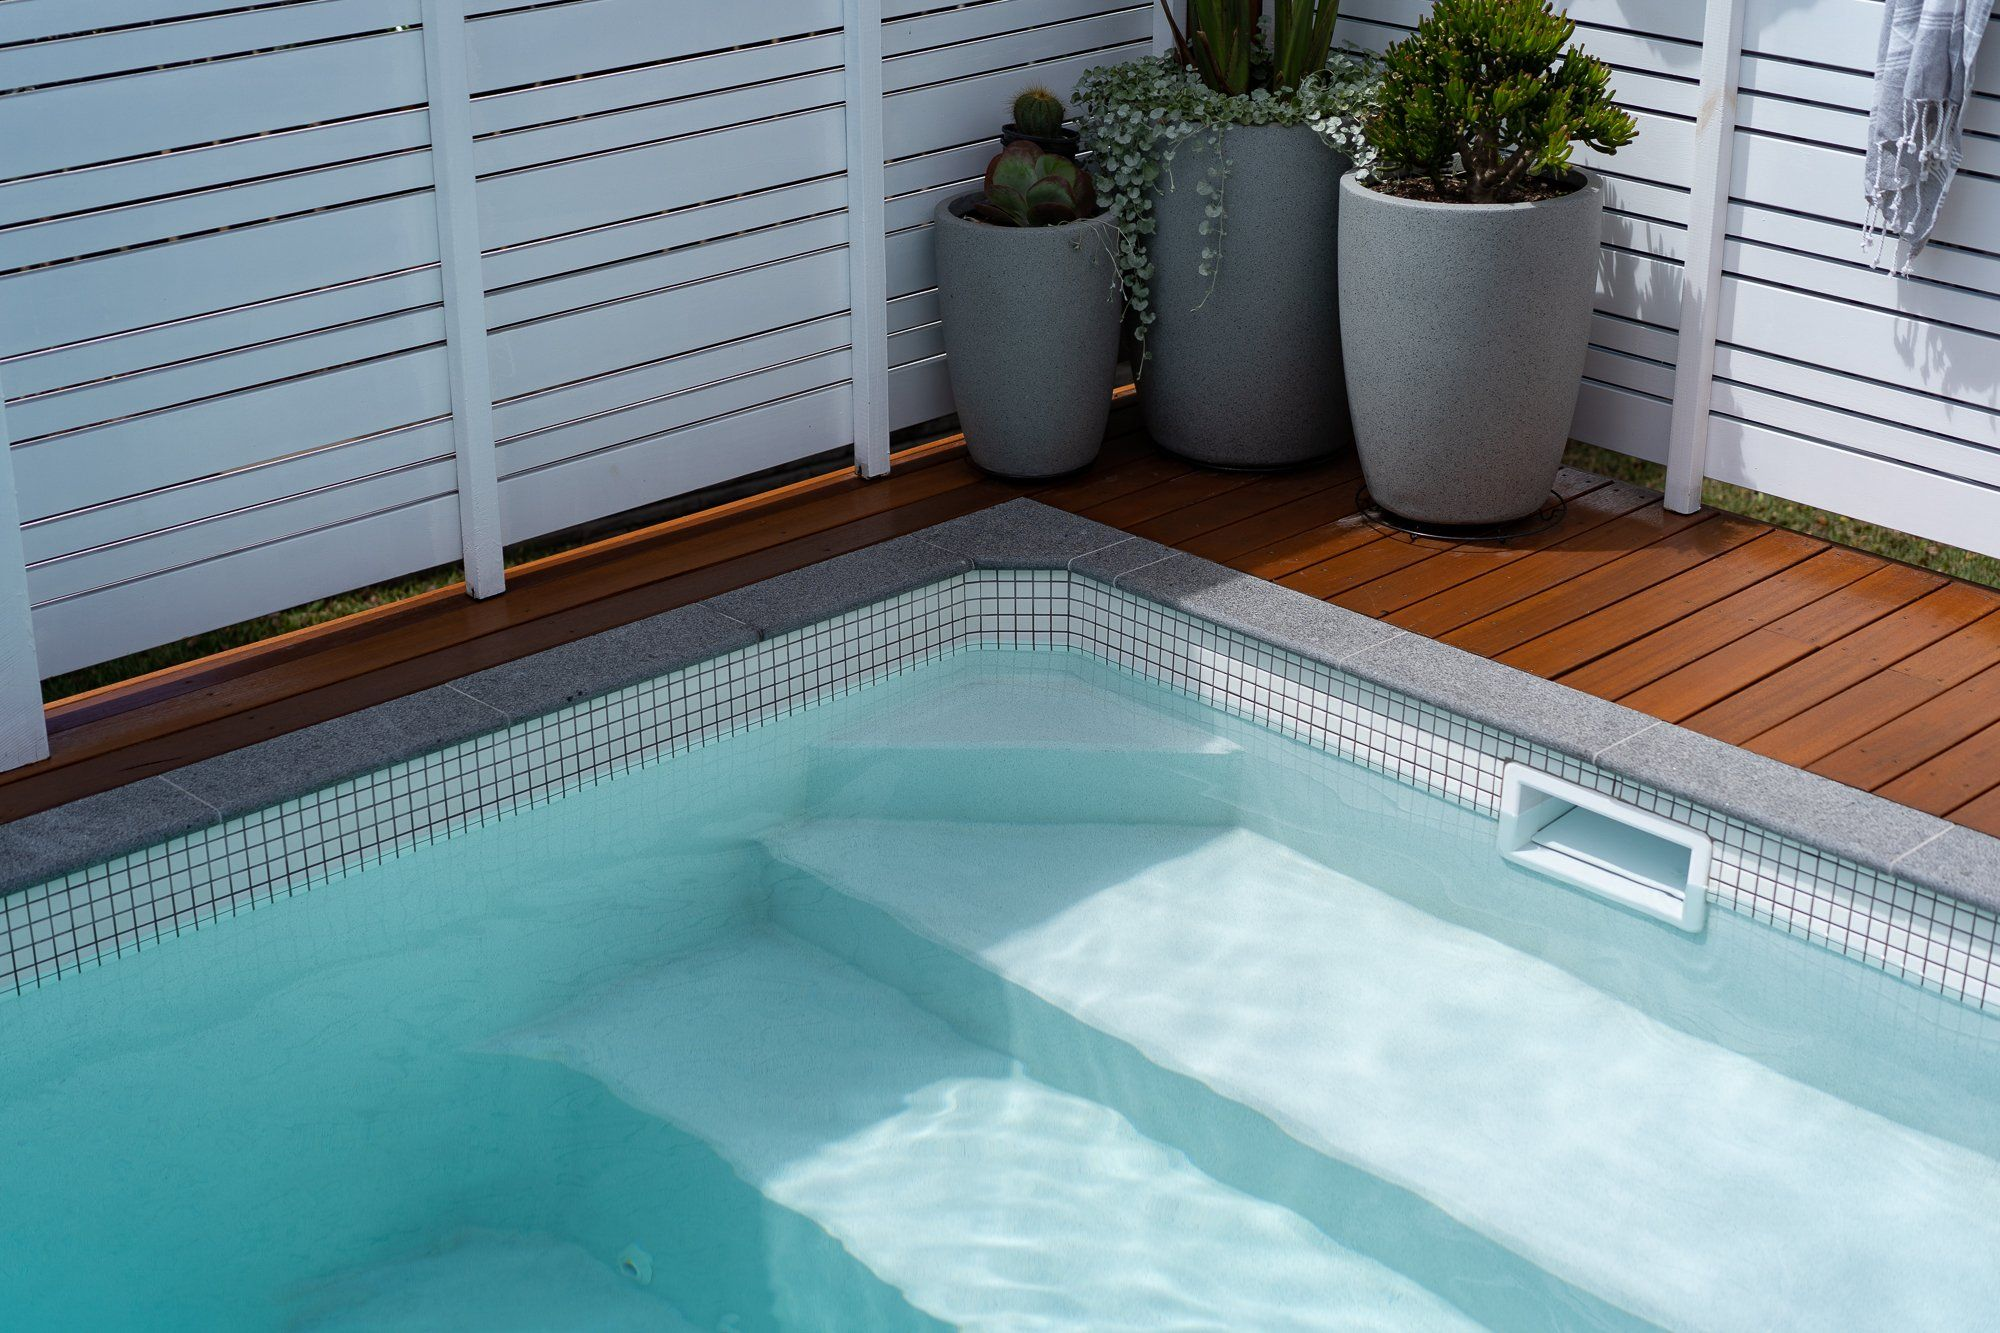 Gallery   Plungie in 20   Outdoor pool decor, Plunge pool, Pool ...